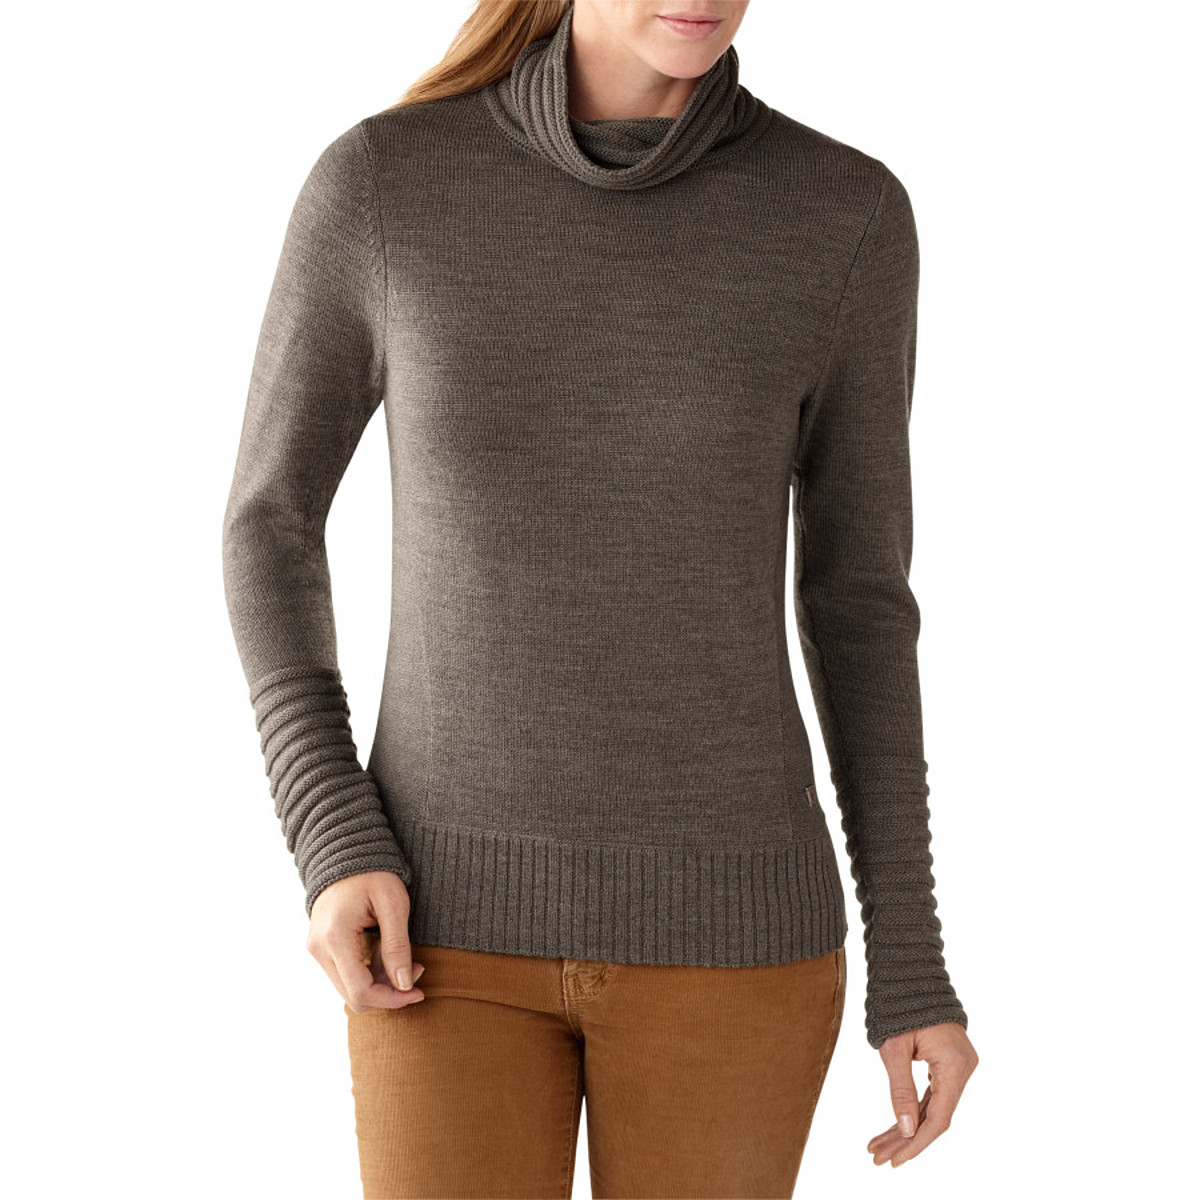 Smartwool Hayden Spires Turtleneck Sweater